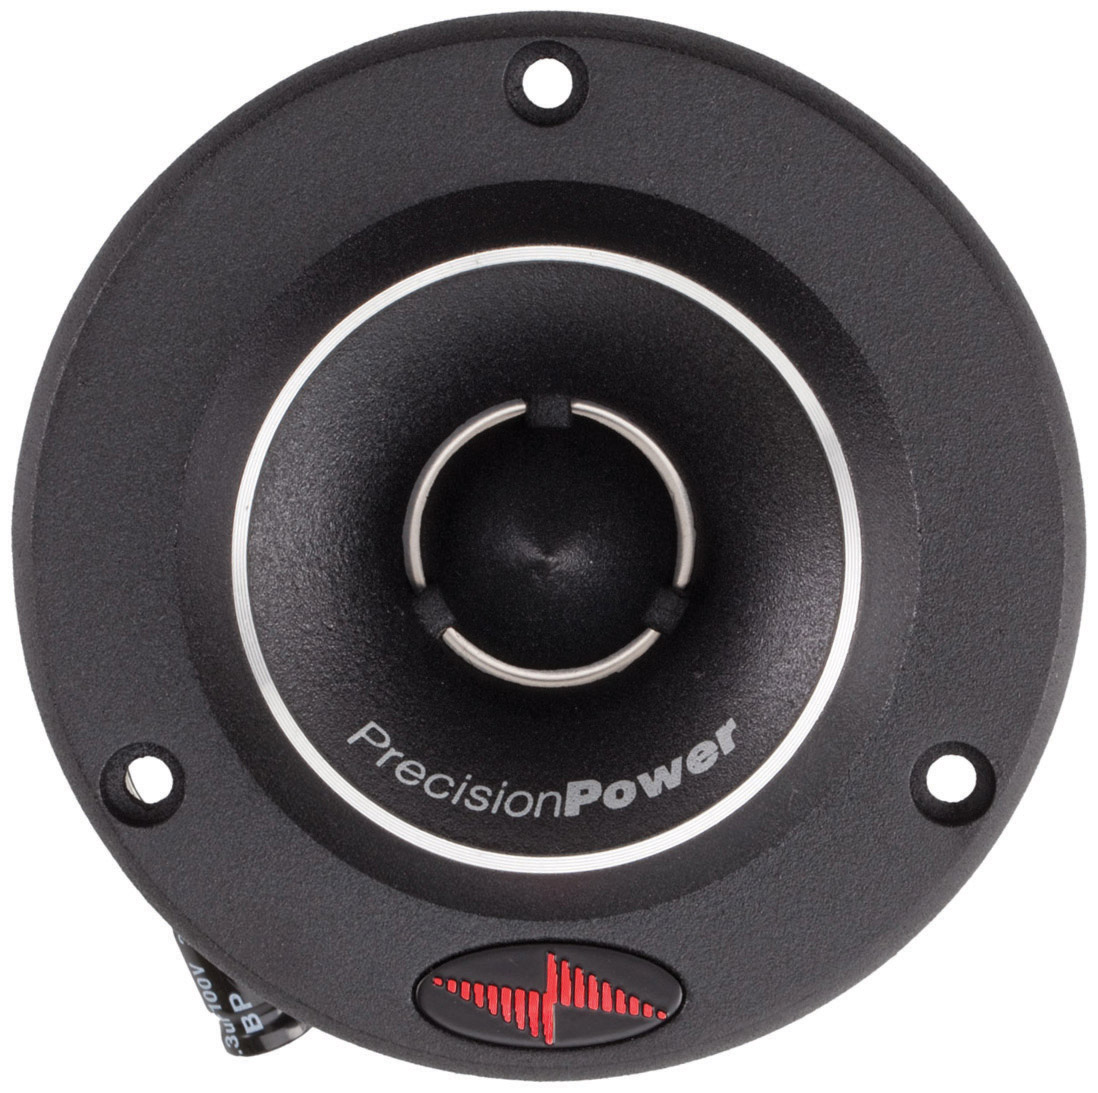 "Precision Power 1"" Pro Titanium Tweeter 90W Max. Pair"